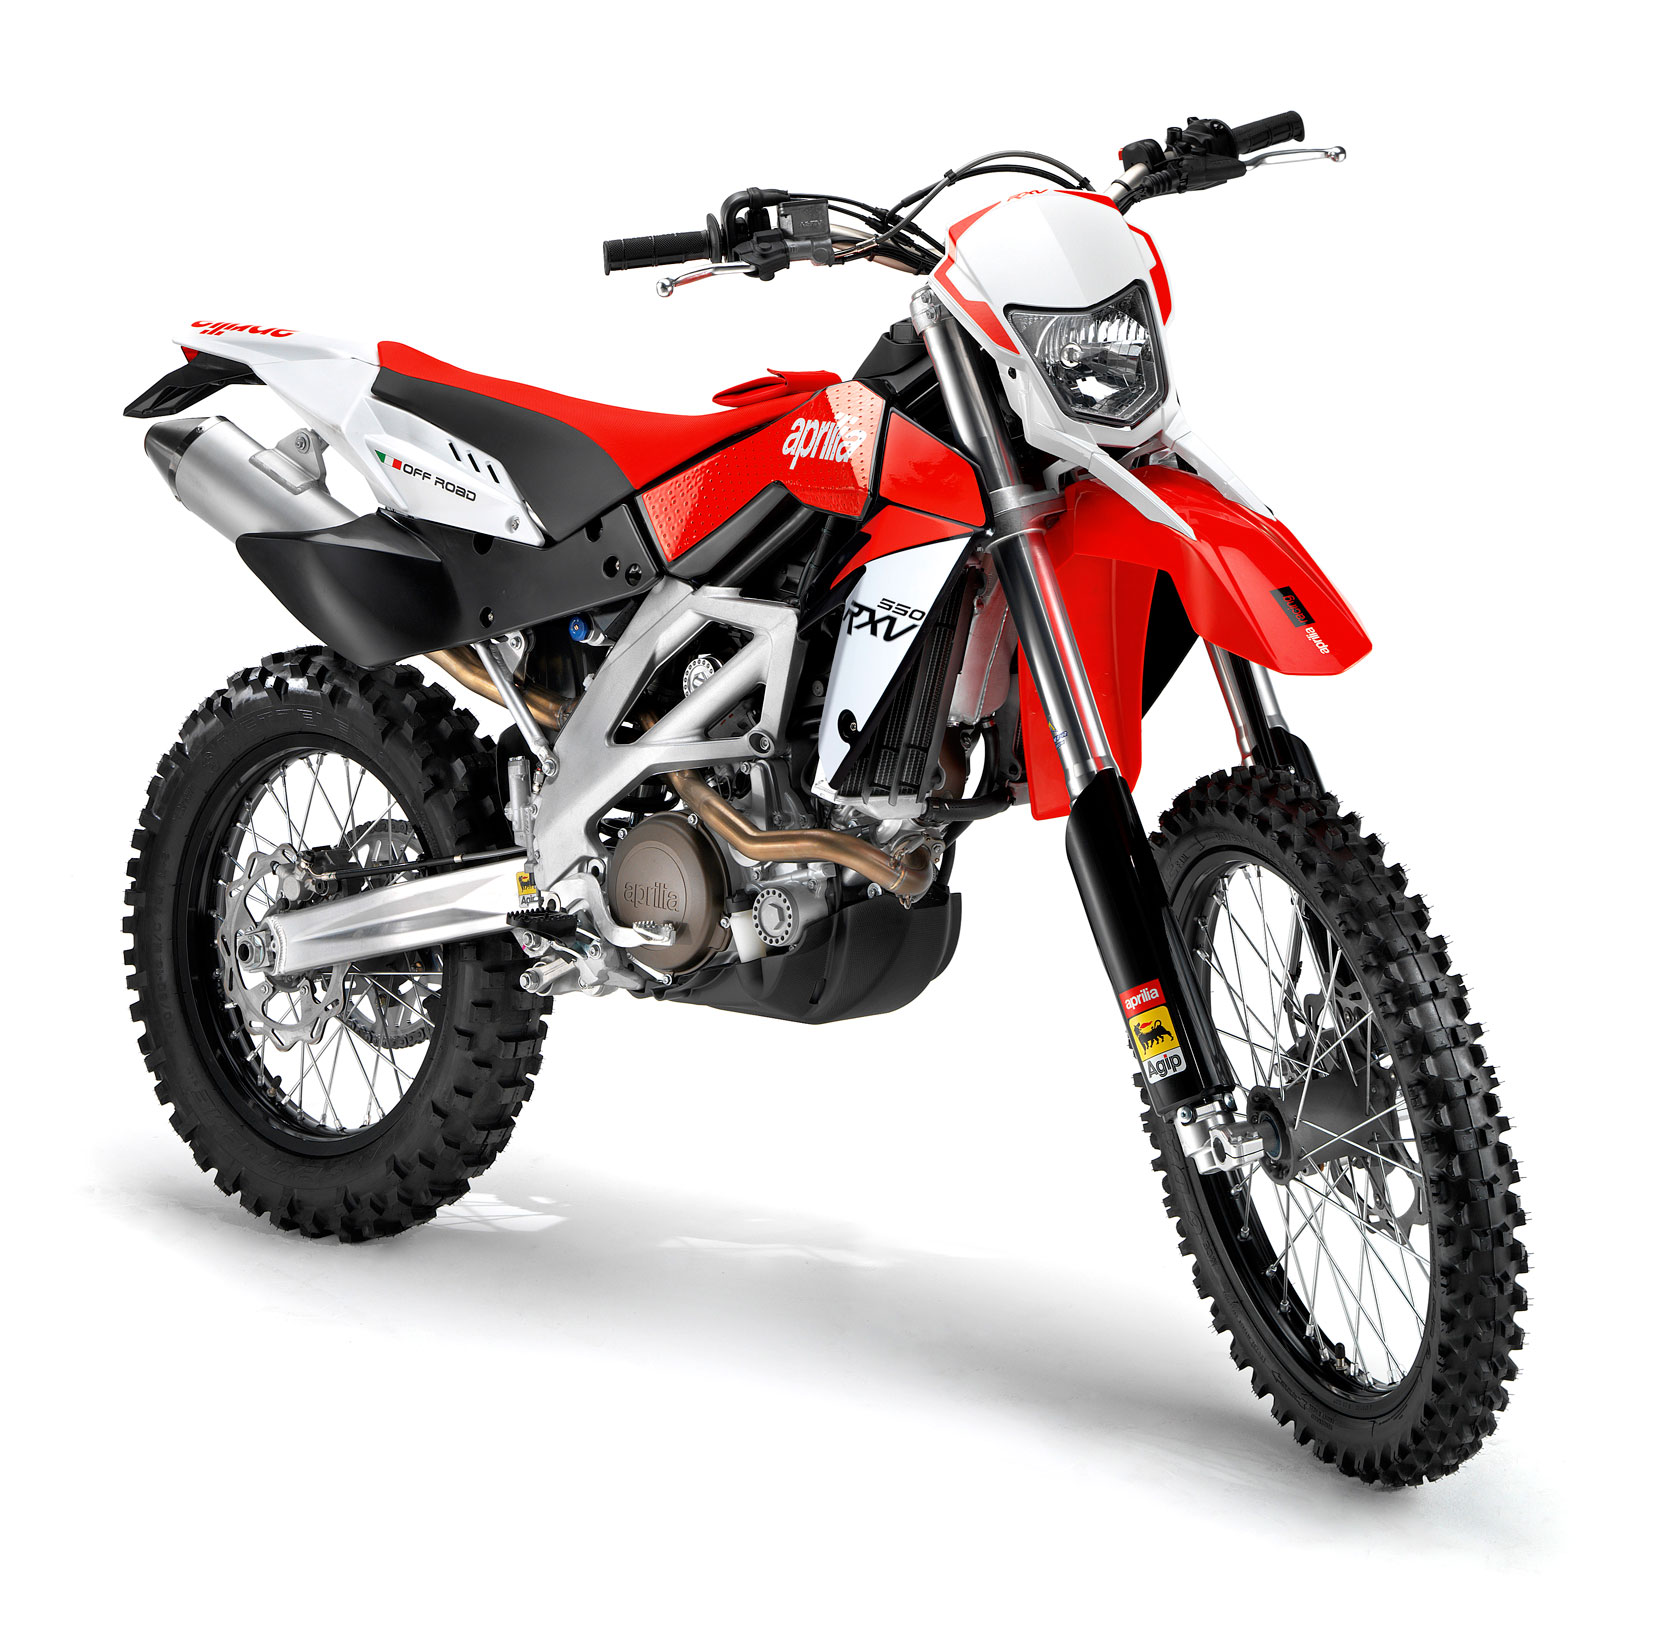 Highland 950 V2 Outback Supermoto 2008 images #169806